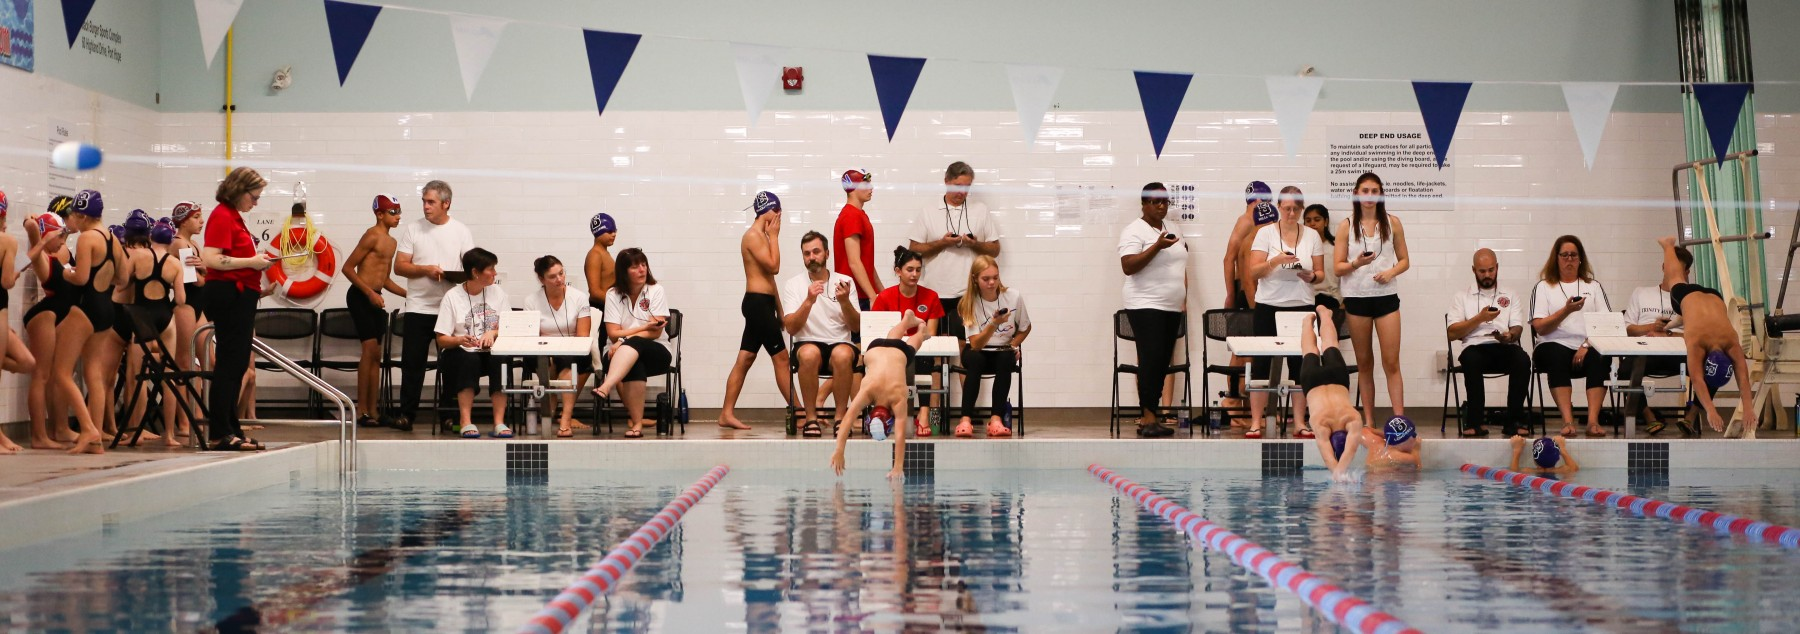 October-2019-NORAC-Swim-Meet-3115